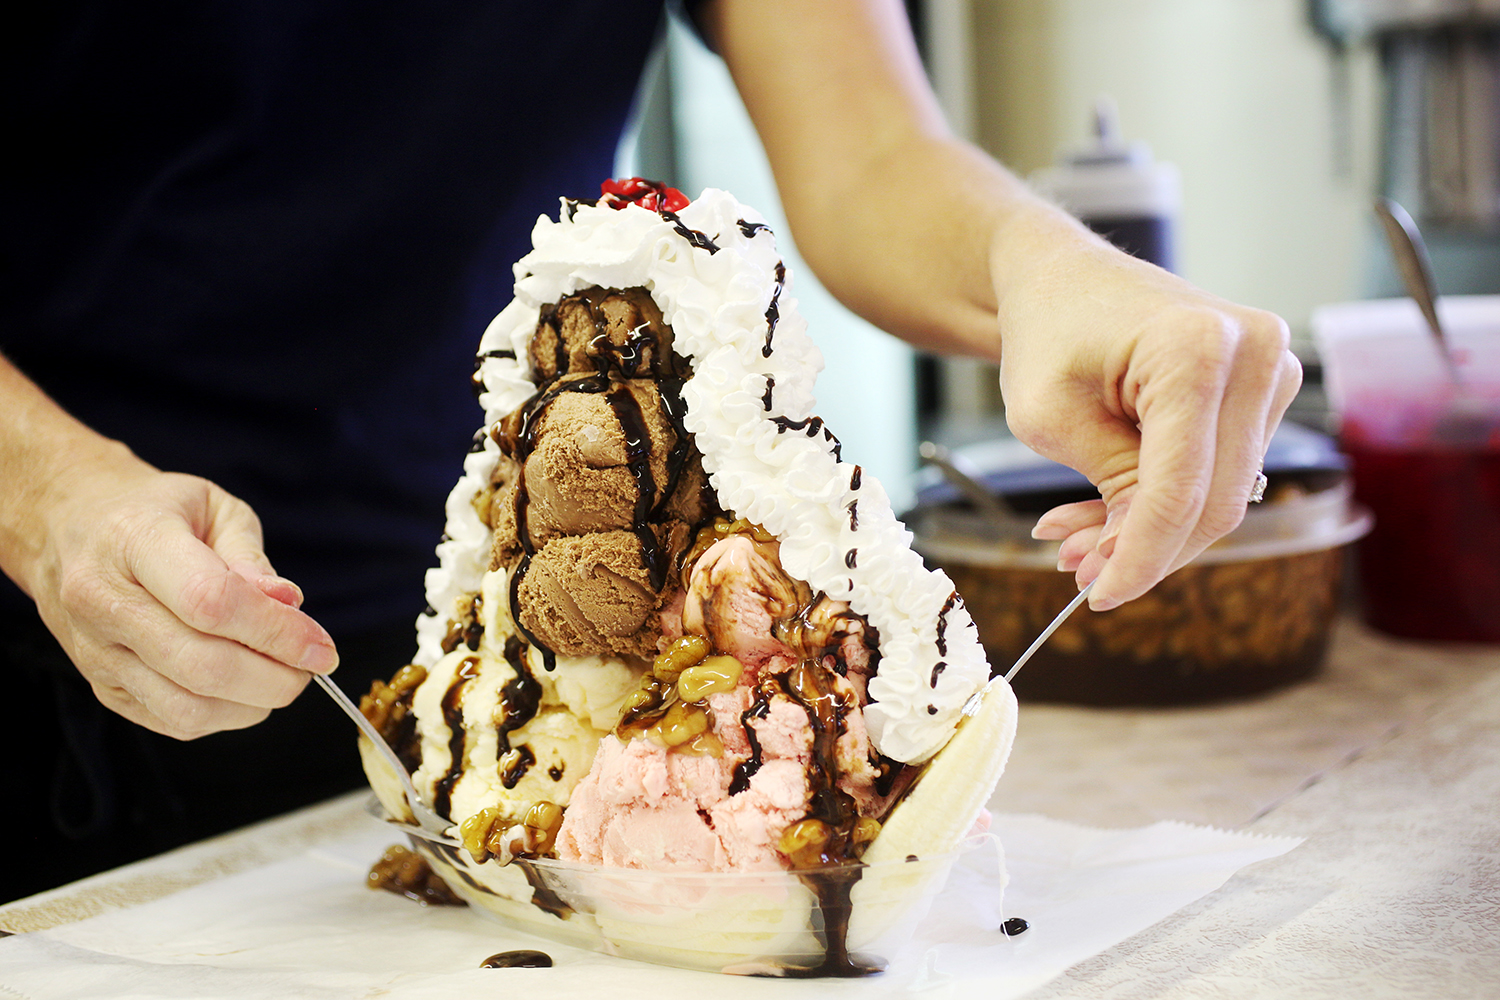 Though the old Dairy Center is now the Bar-B-Q Center, ice cream is still part of the experience. In fact, the banana split alone is enough to feed a family.